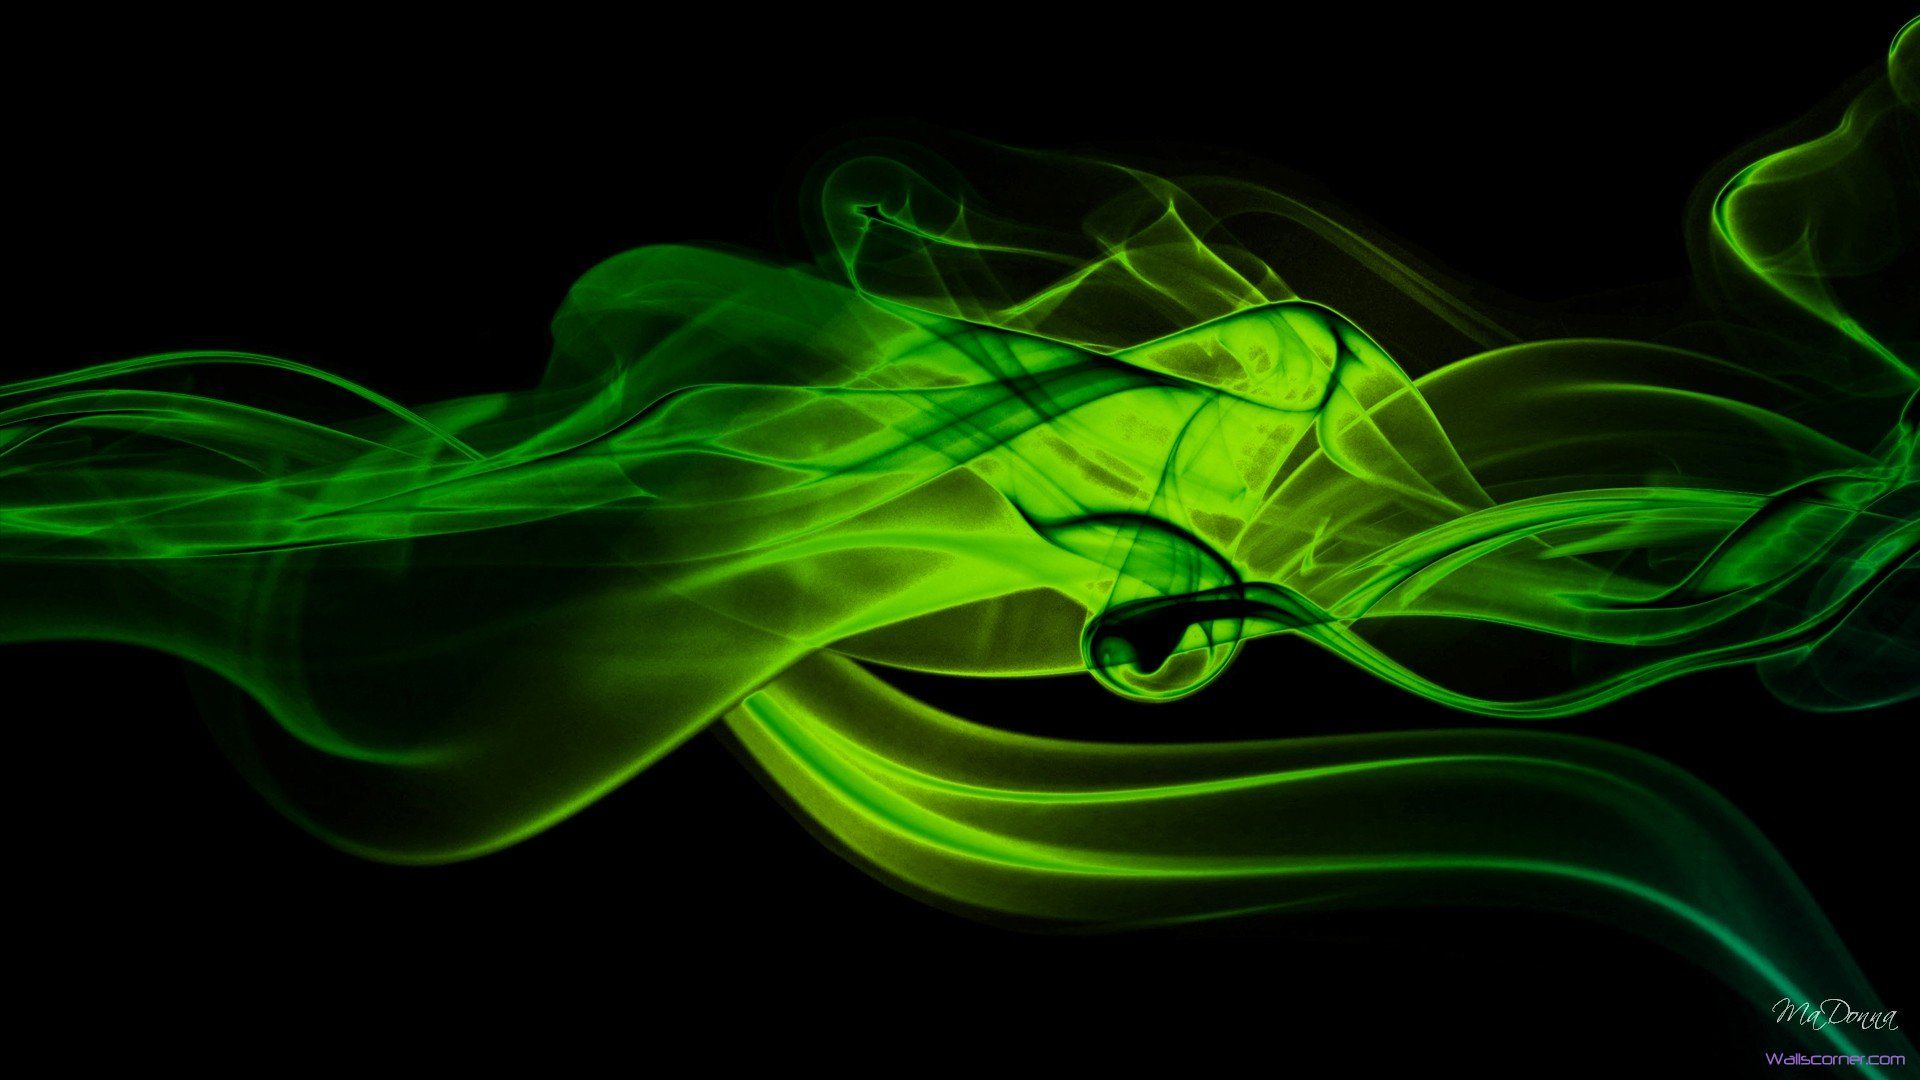 Green Smoke Abstract Hd 1920x1080 Jpg 1920 1080 Lime Green